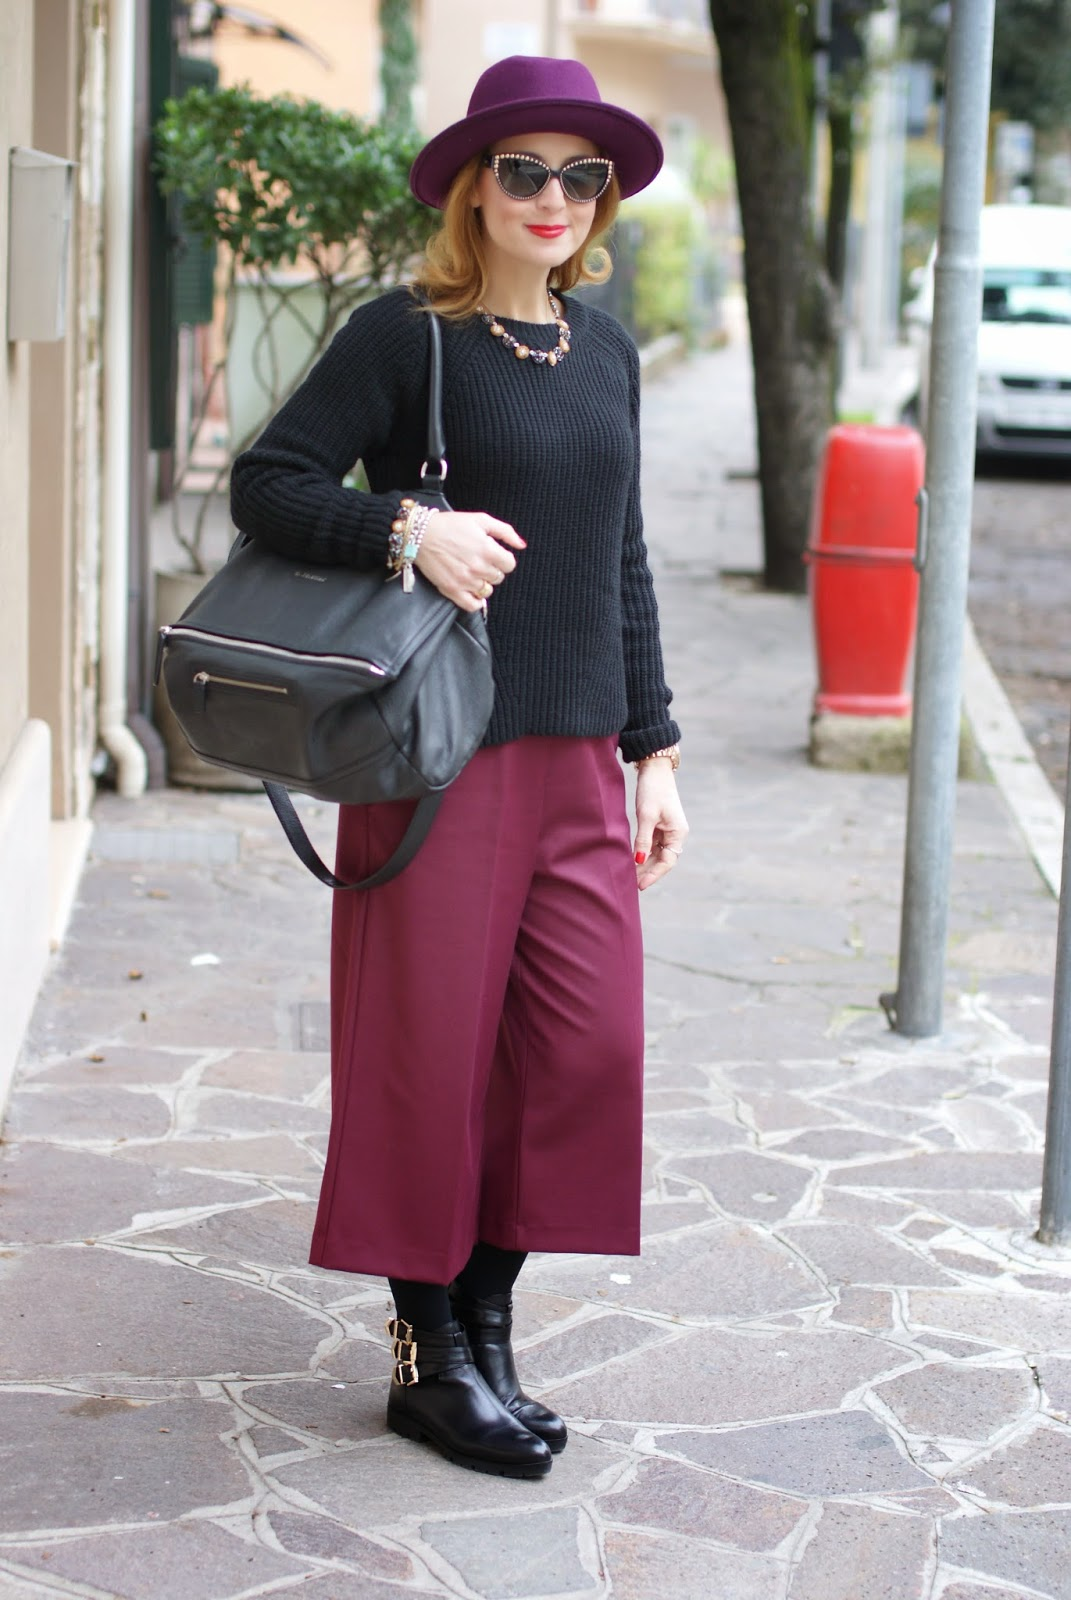 Ribbed knit sweater, Givenchy Pandora bag, culottes pants, Fashion and Cookies, fashion blogger